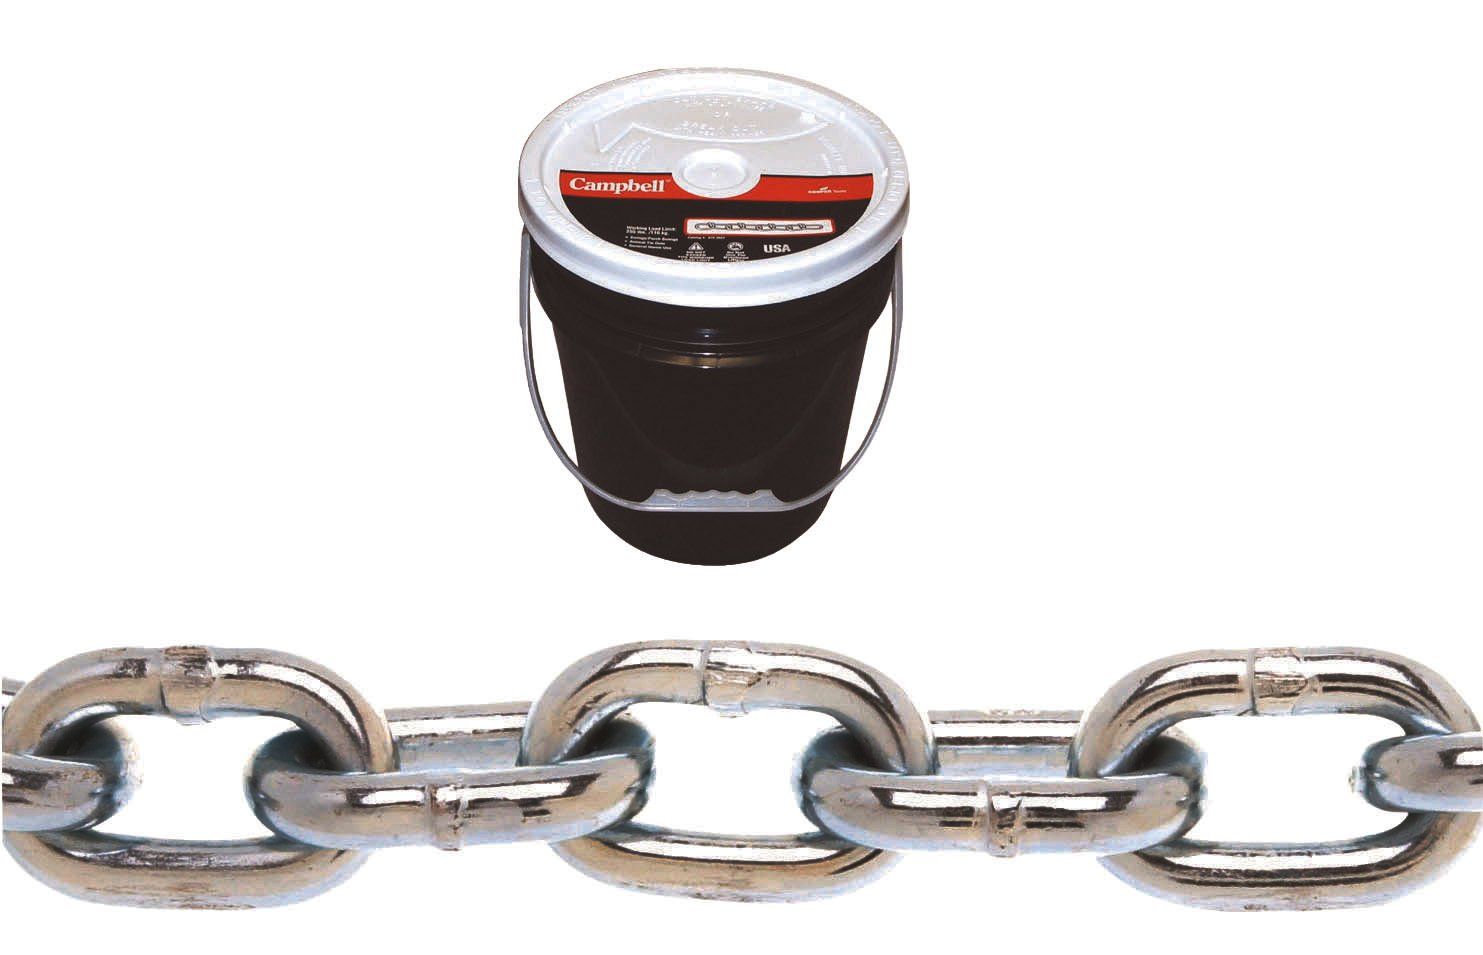 CAMPBELL 0140323 System 3 Grade 30 Low Carbon Steel Proof Coil Chain in Round Pail, Zinc Plated, 3/16-Inch Trade, 0.21-Inch Diameter, 250-Feet Length, 800-Pound Load Capacity 3/16 Inch Trade 0.21 Inch Diameter 250' Length 800 lbs. Load Capacity 147432